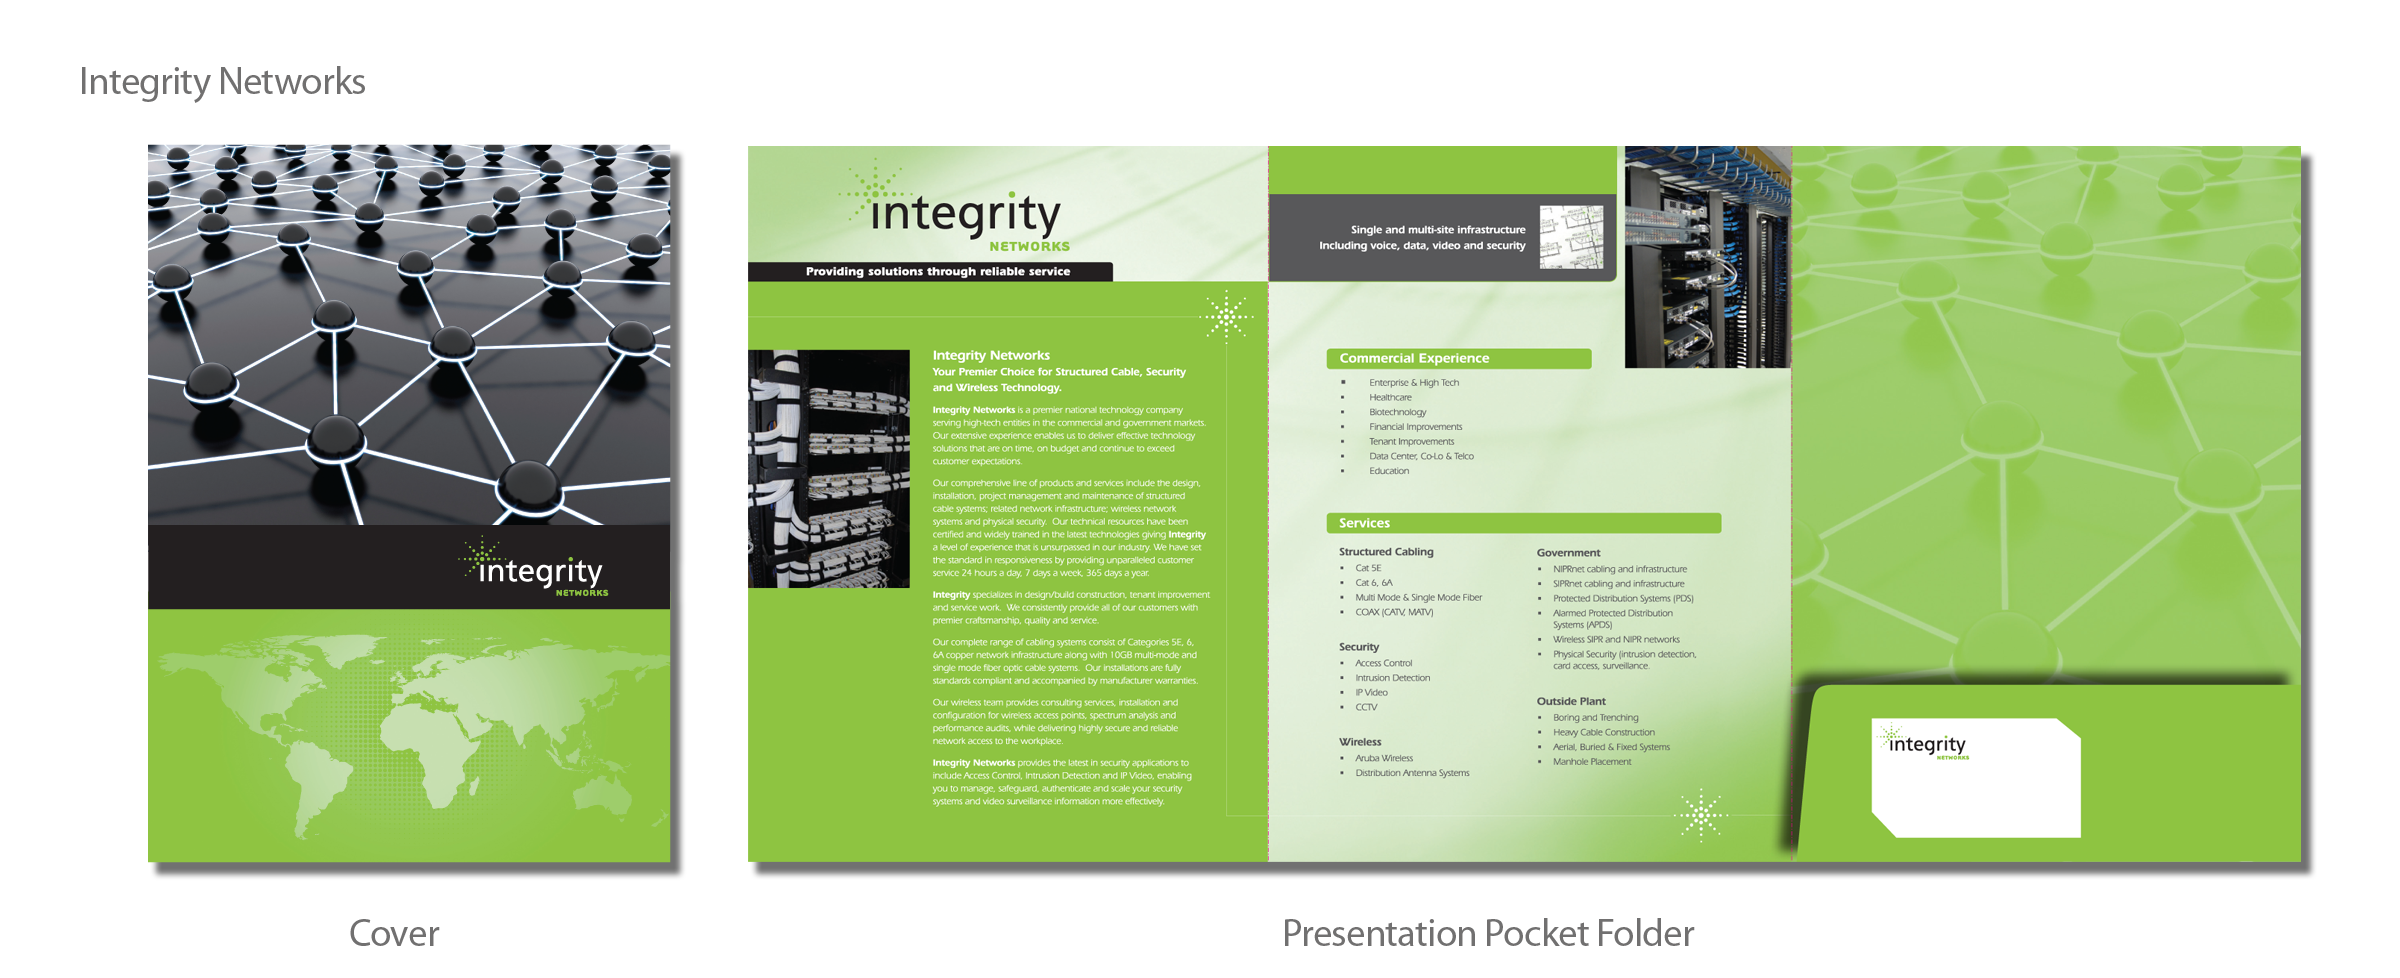 integrity samples